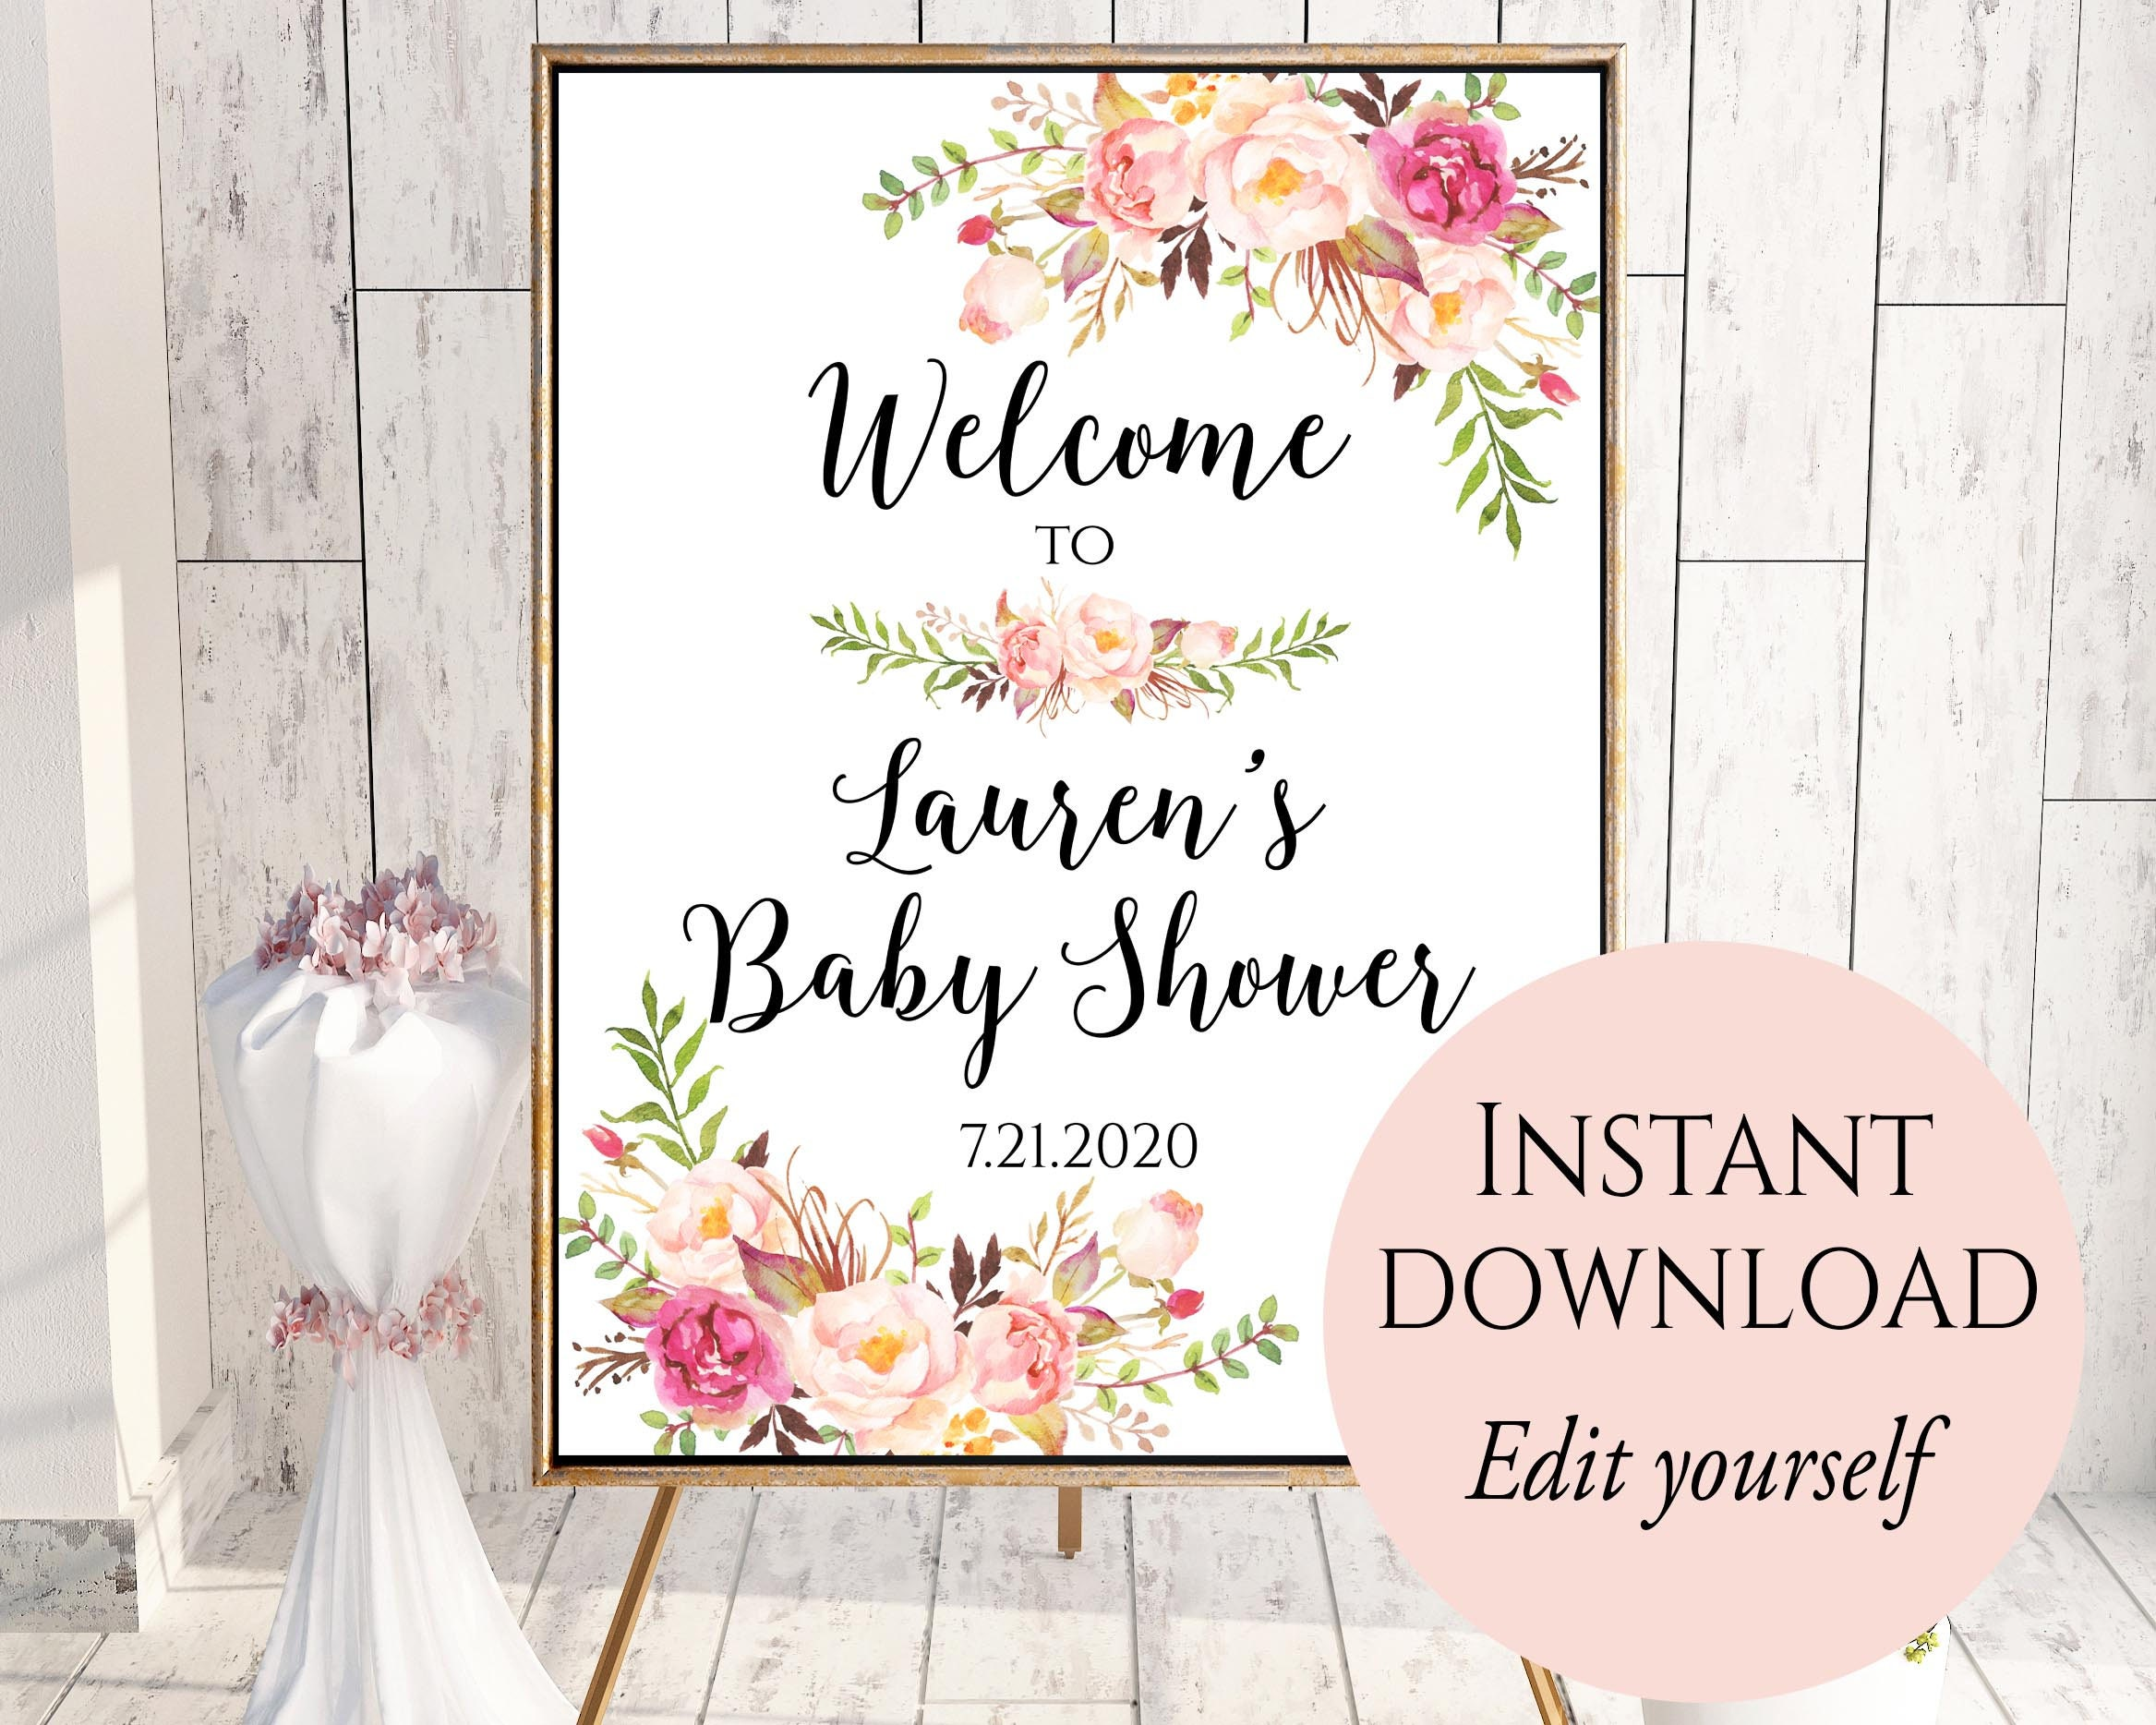 welcome to baby shower baby shower welcome sign template. Black Bedroom Furniture Sets. Home Design Ideas